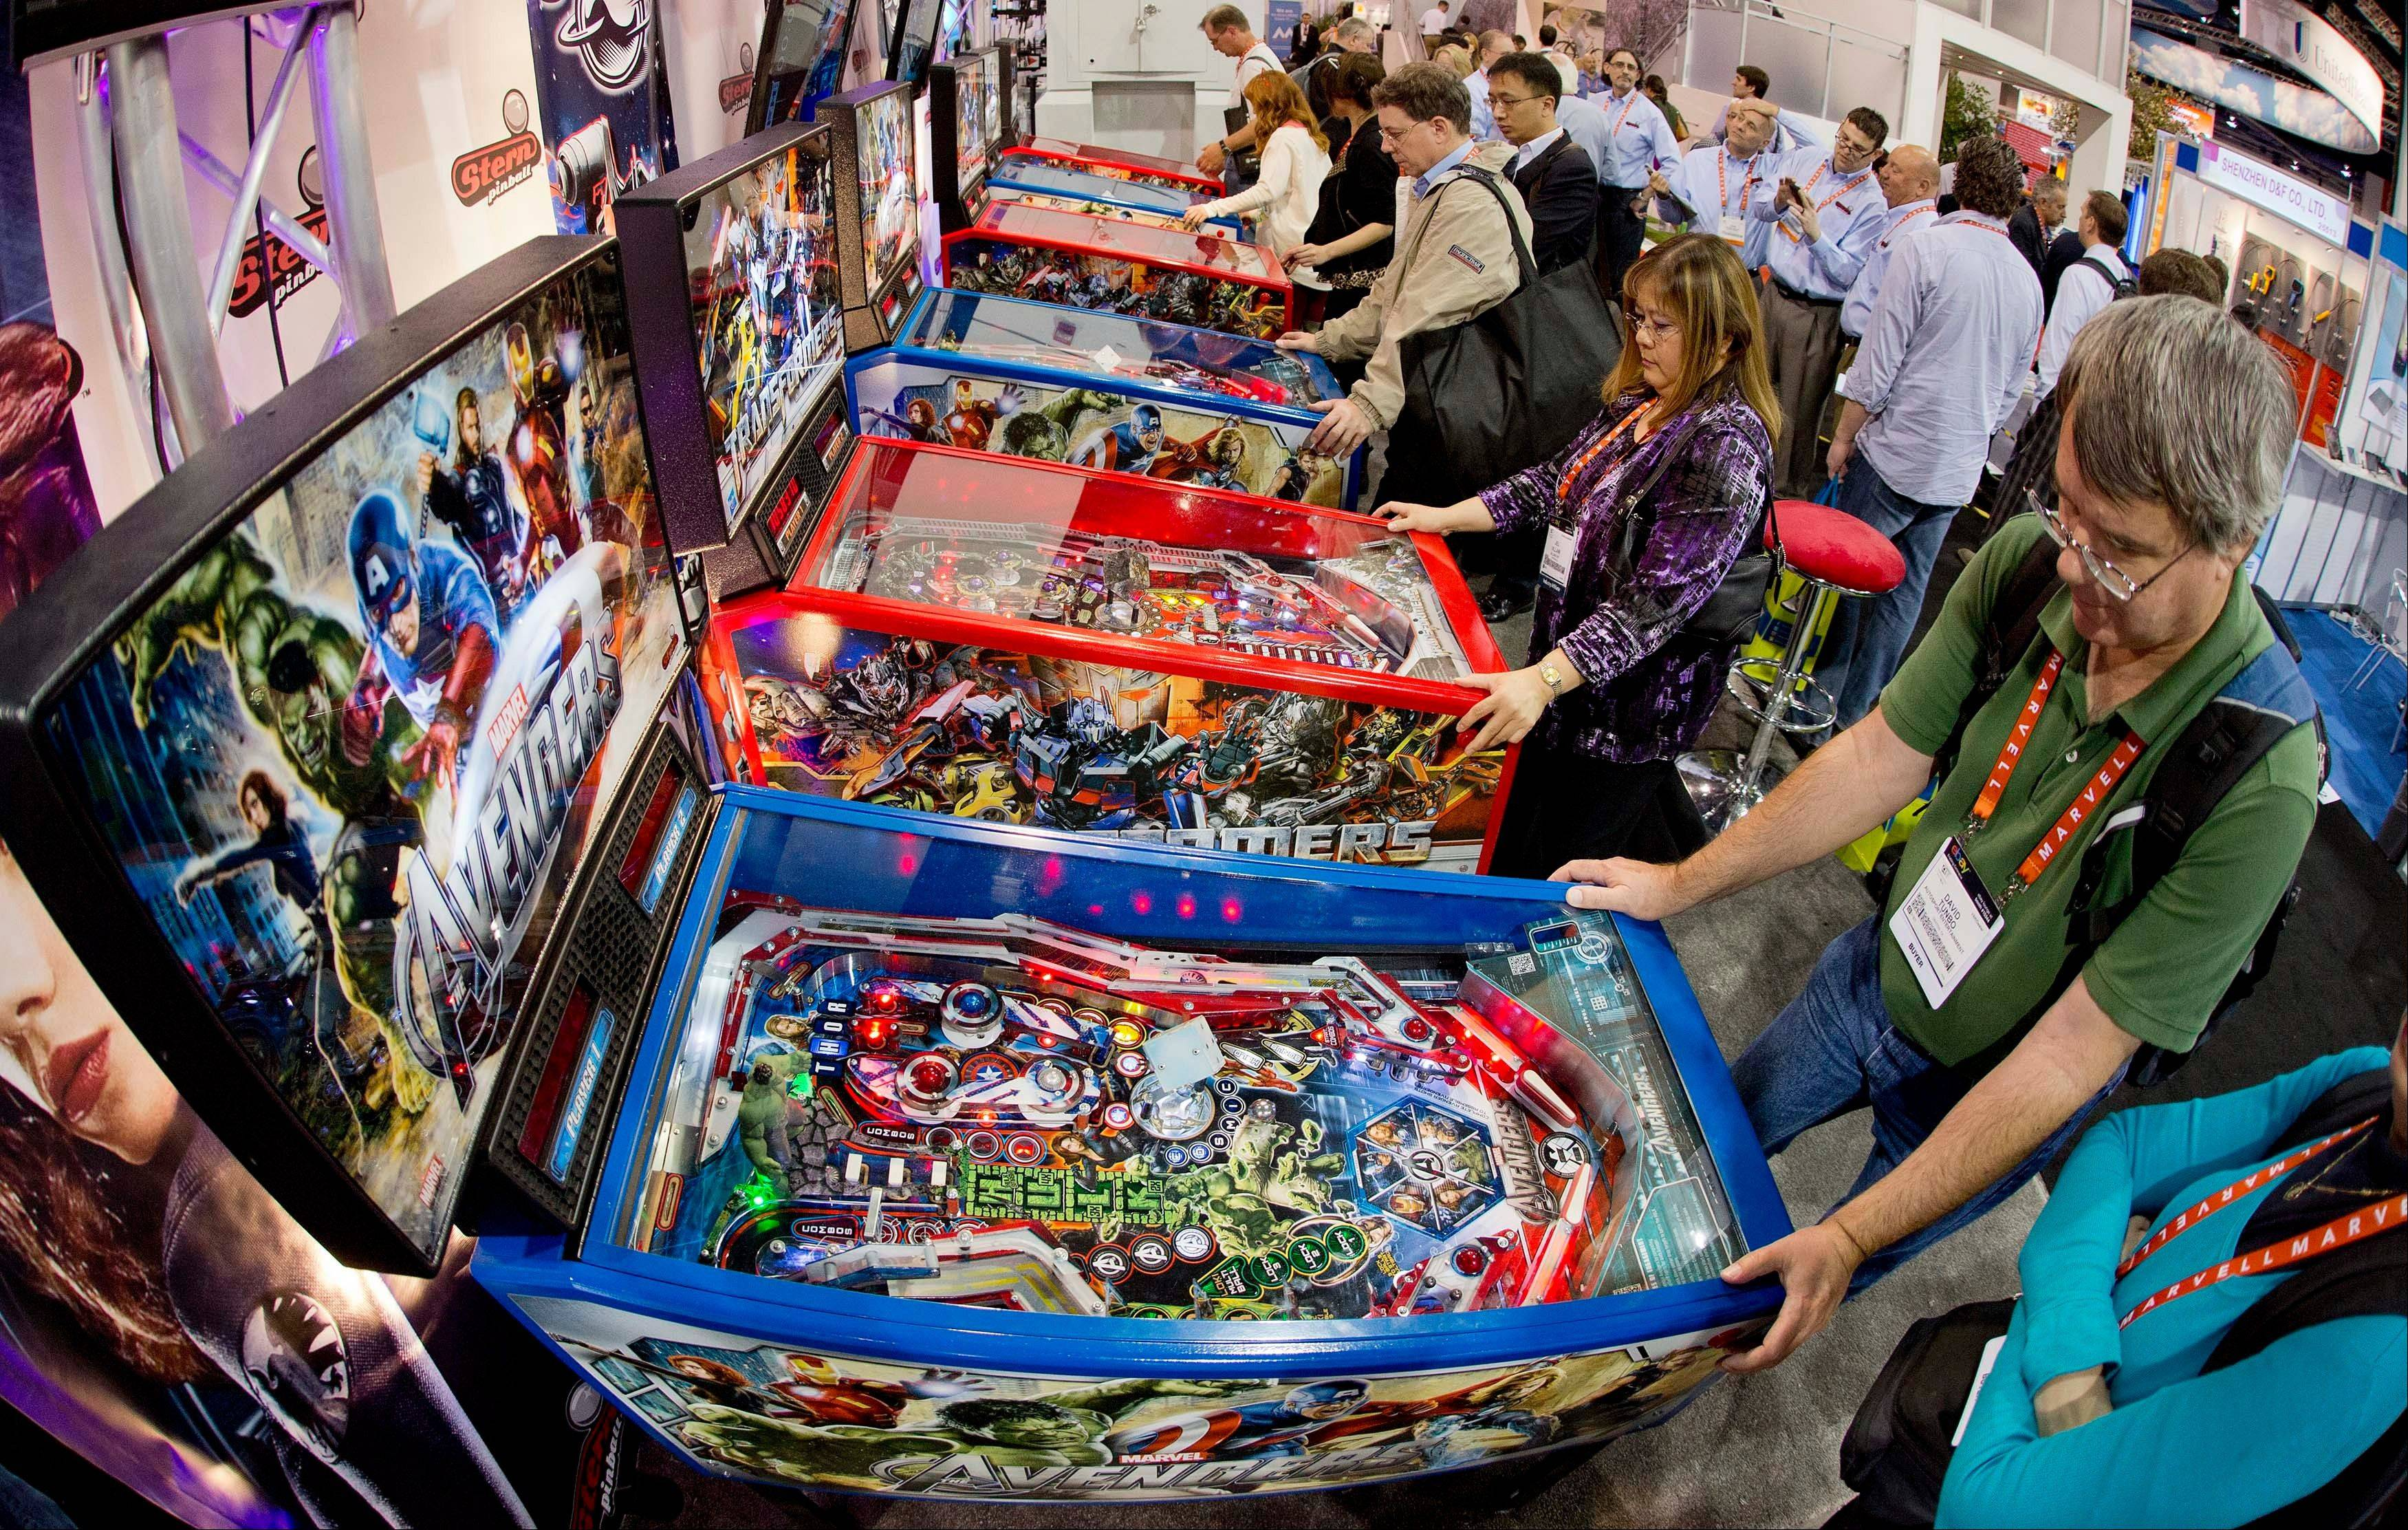 Convention goers play on a bank of pinball machines at the Consumer Electronics Show, Wednesday, Jan. 9, 2013, in Las Vegas.